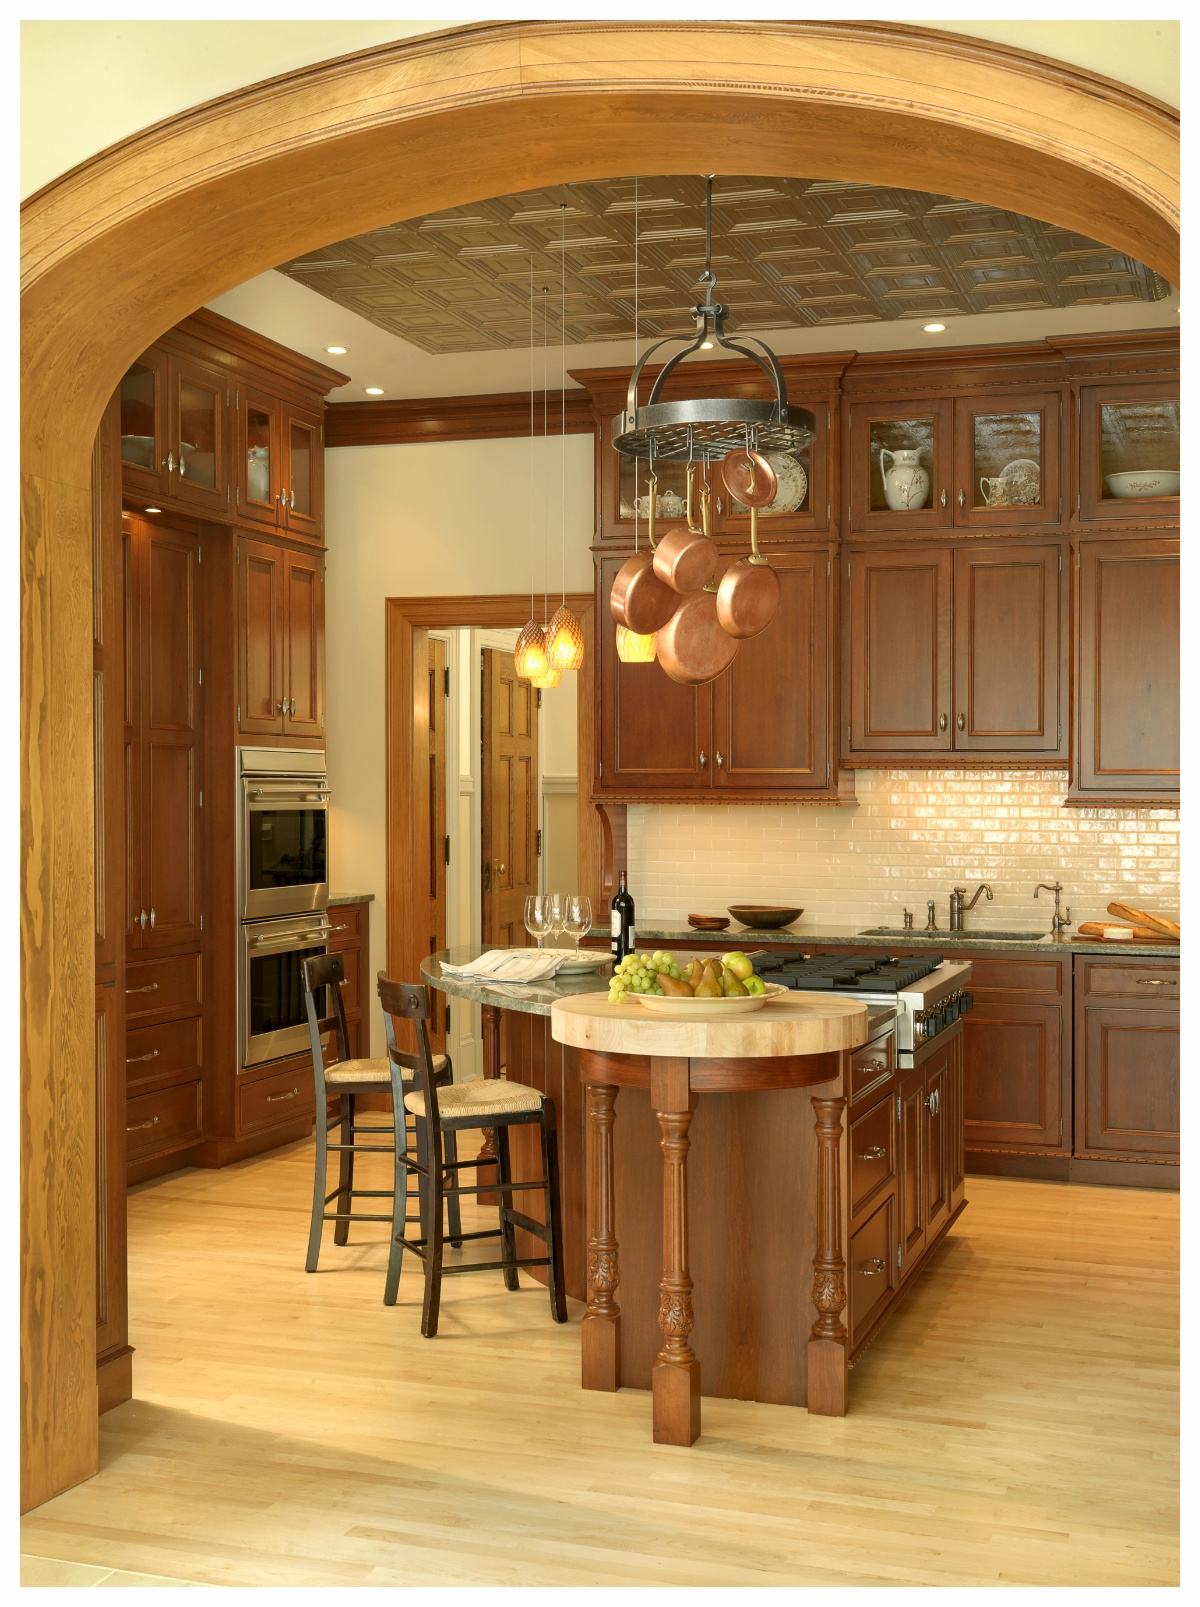 kitchen-small .jpg